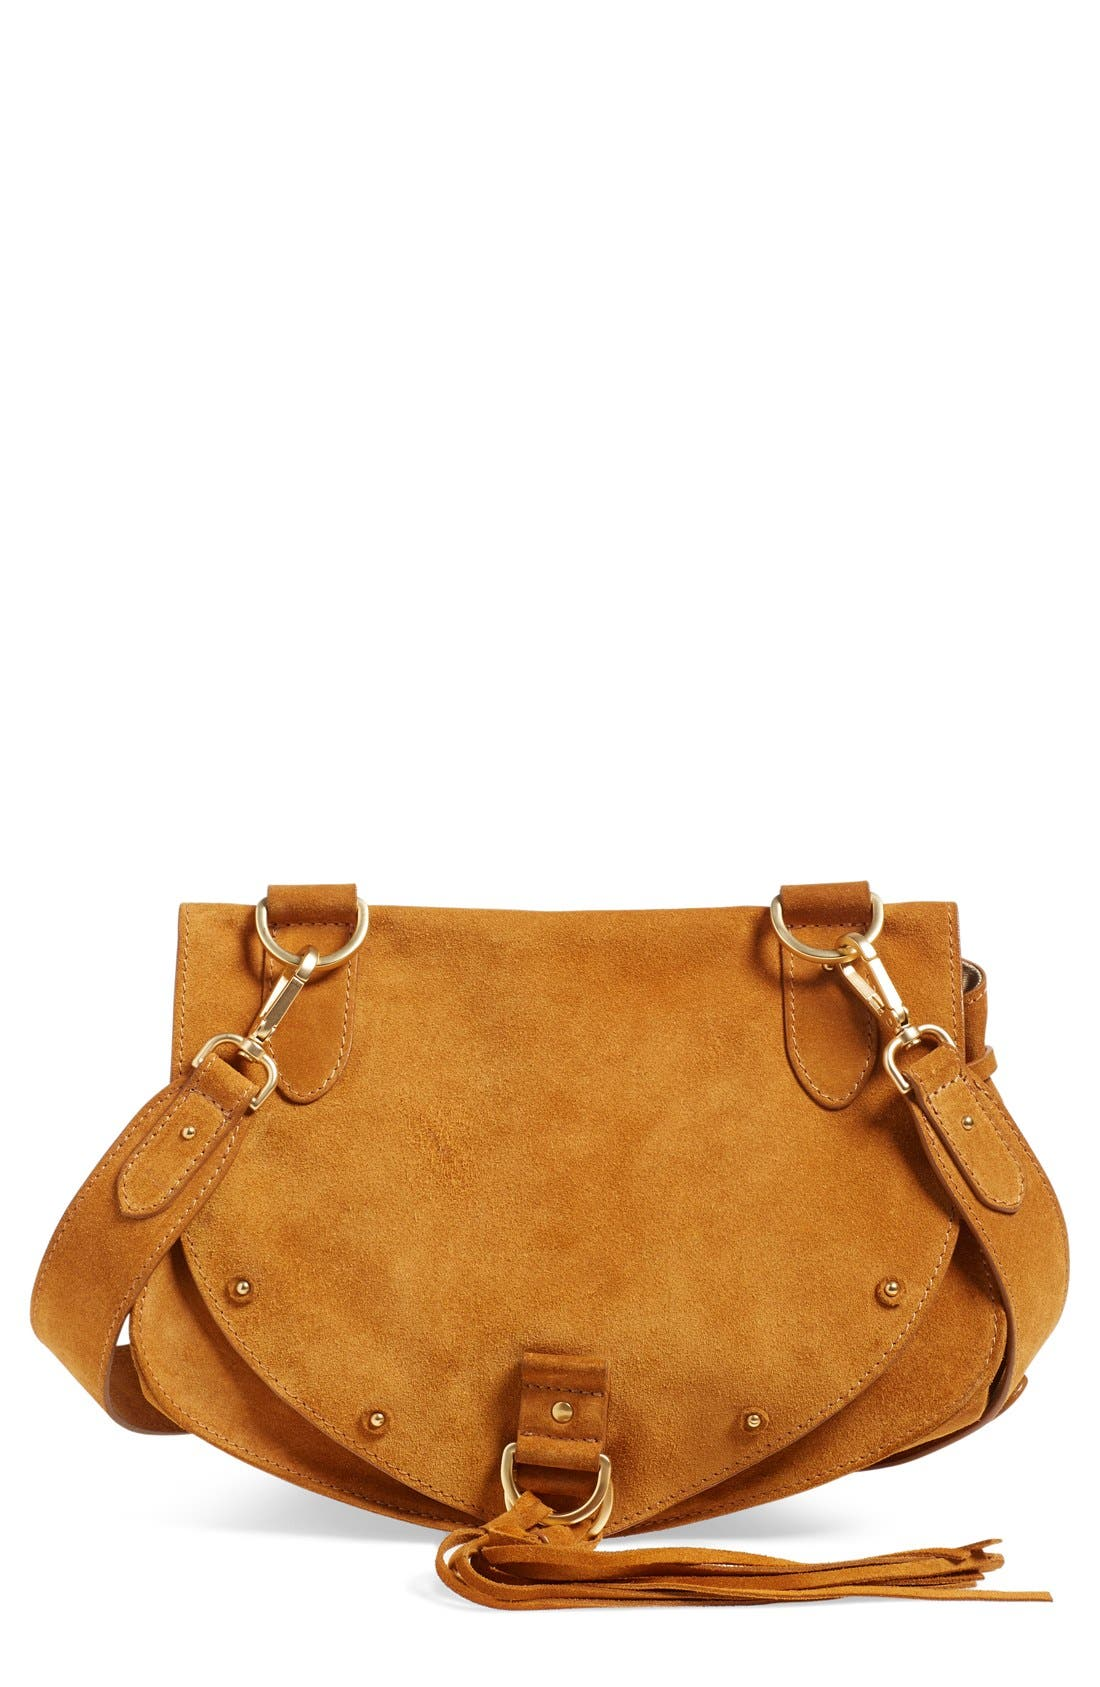 Main Image - See by Chloé 'Medium Collins' Leather & Suede Messenger Bag